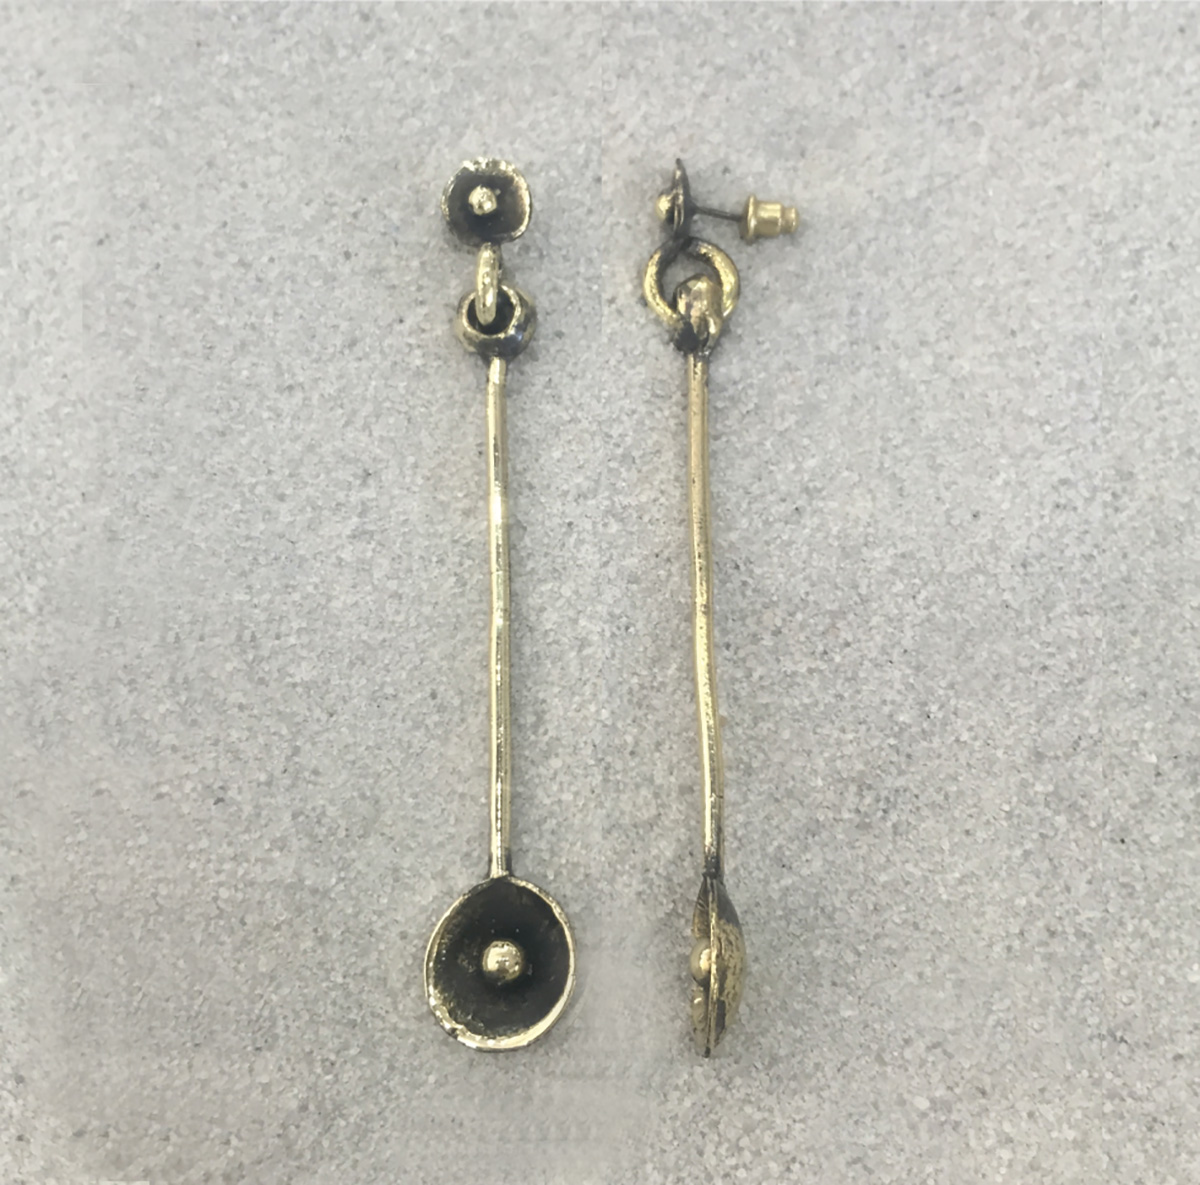 BRONZE EARRINGS 4014